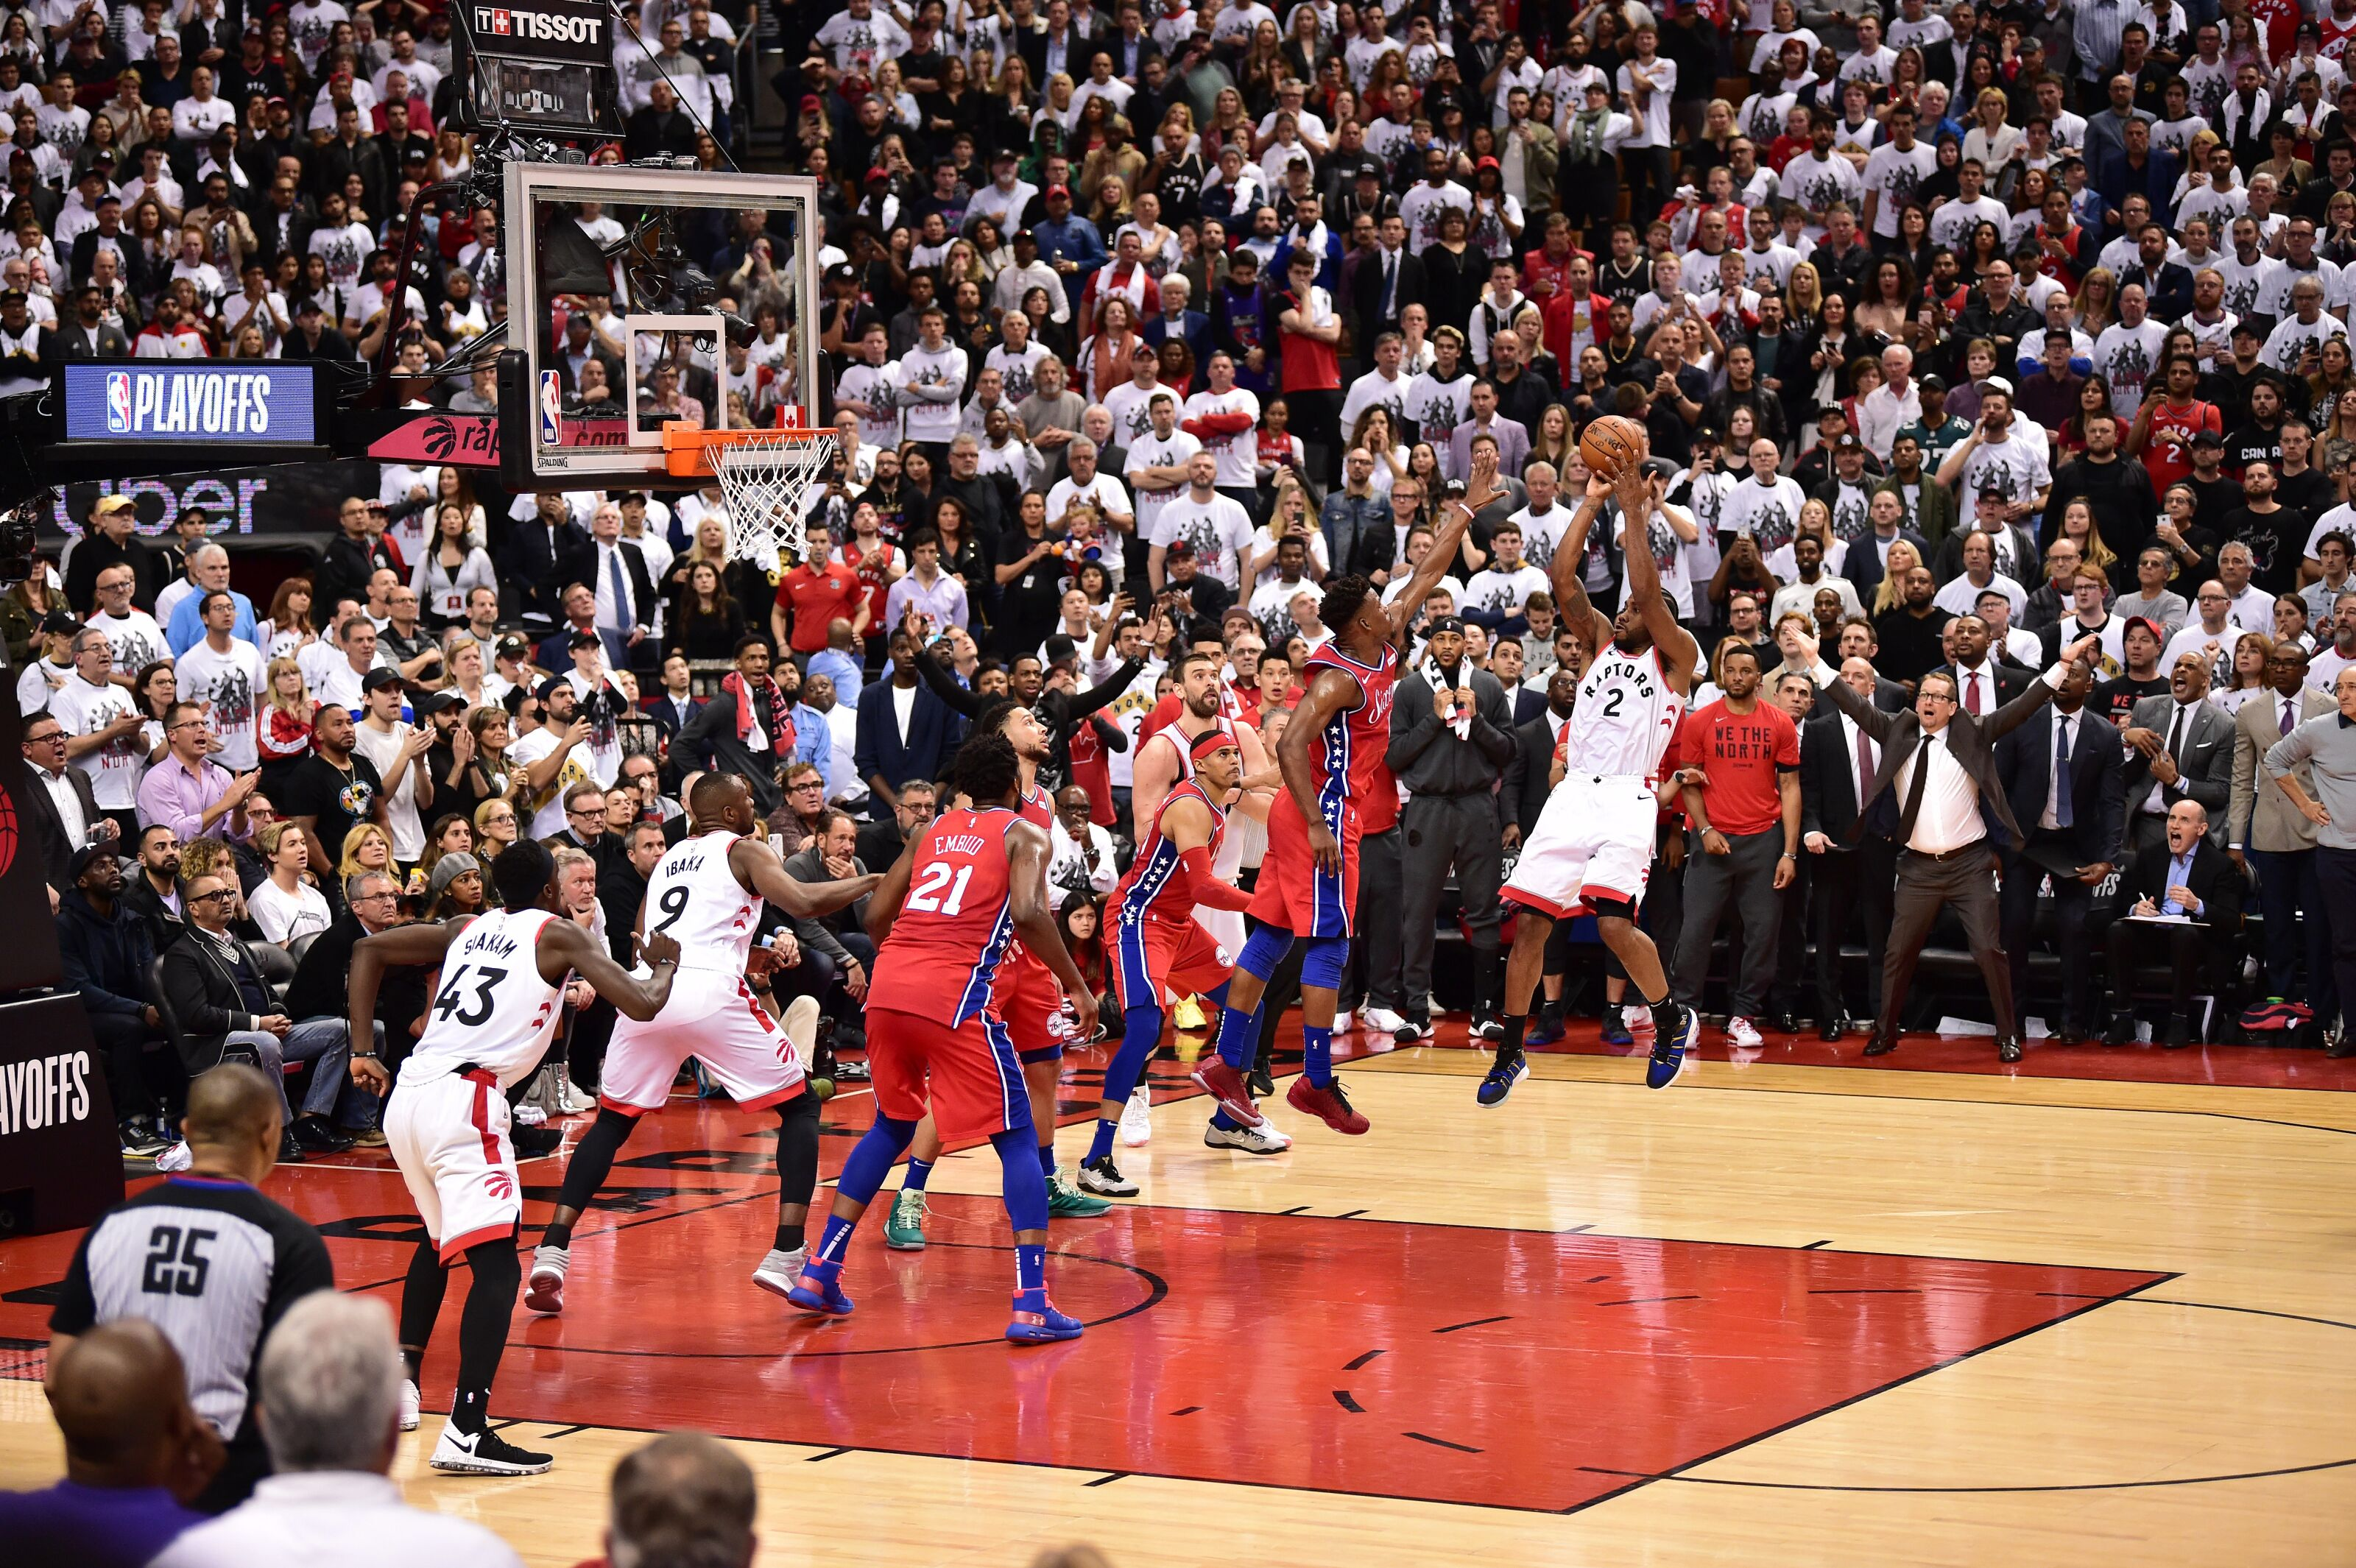 TORONTO, CANADA - MAY 12: Kawhi Leonard #2 of the Toronto Raptors shoots the ball against the Philadelphia 76ers during Game Seven of the Eastern Conference Semi-Finals of the 2019 NBA Playoffs on May 12, 2019 at the Scotiabank Arena in Toronto, Ontario, Canada. NOTE TO USER: User expressly acknowledges and agrees that, by downloading and or using this Photograph, user is consenting to the terms and conditions of the Getty Images License Agreement. Mandatory Copyright Notice: Copyright 2019 NBAE (Photo by David Dow/NBAE via Getty Images)